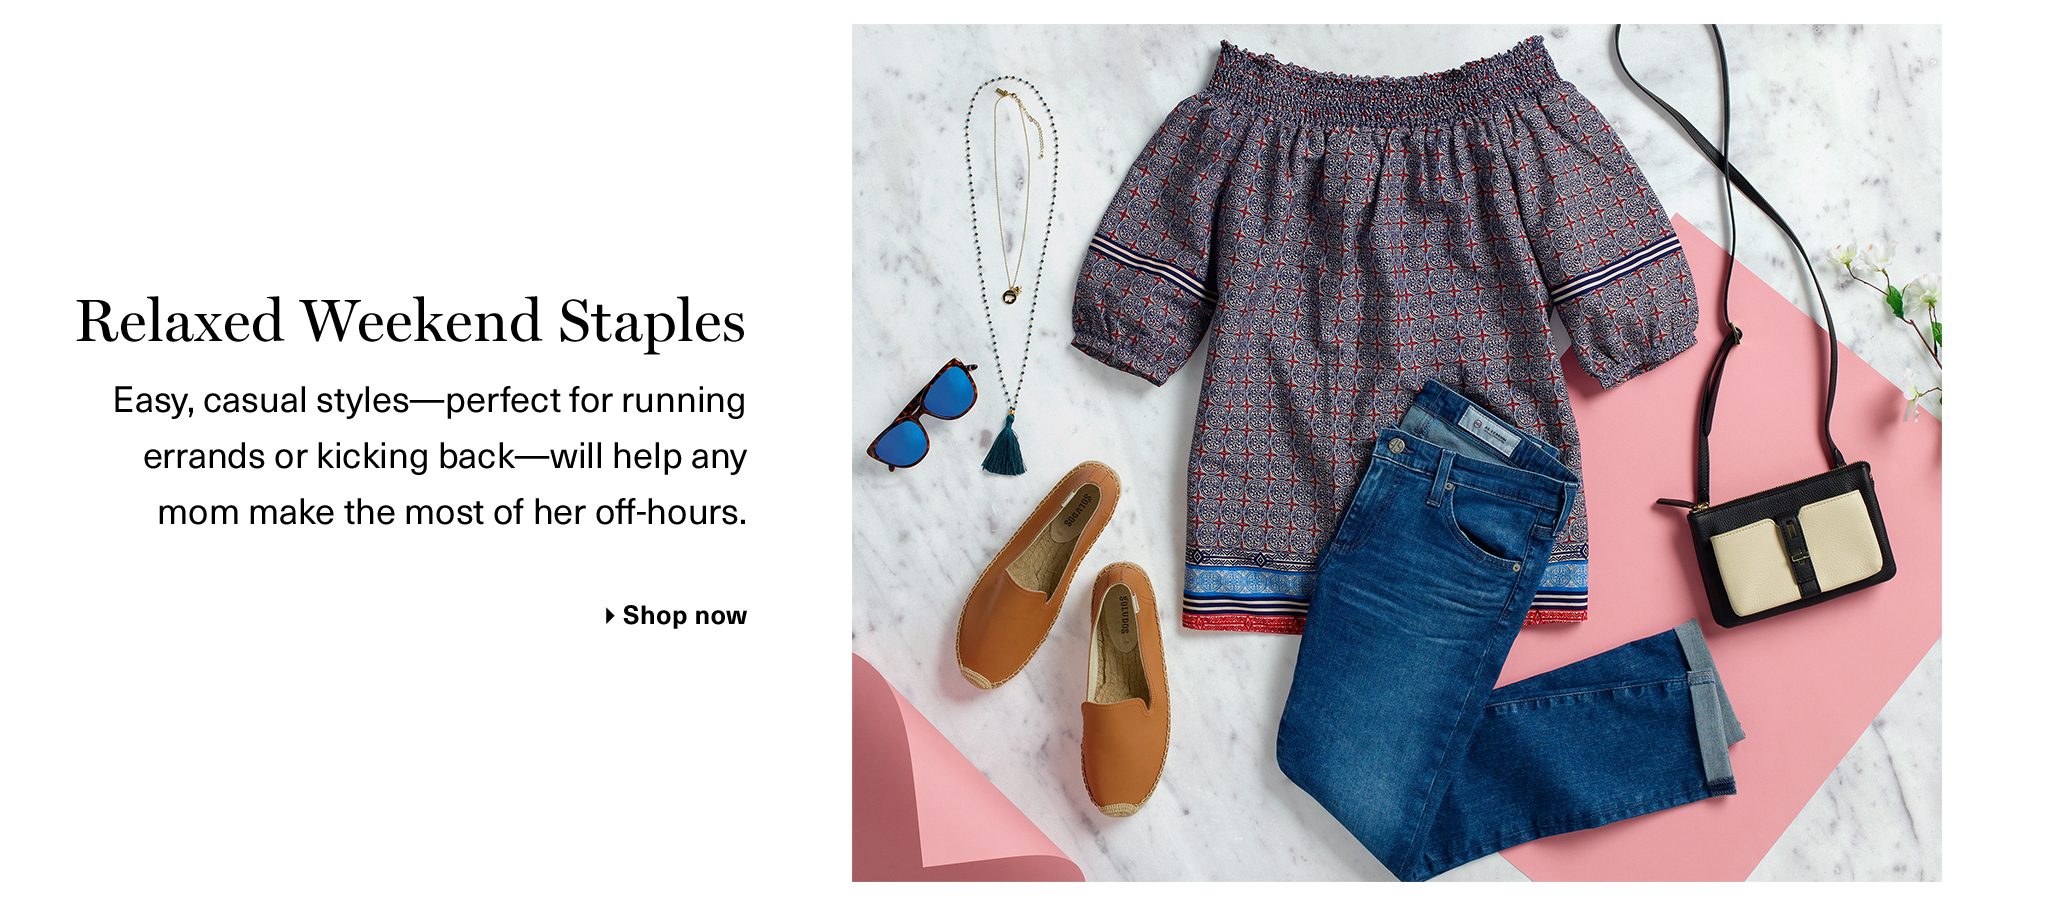 Relaxed Weekend Staples